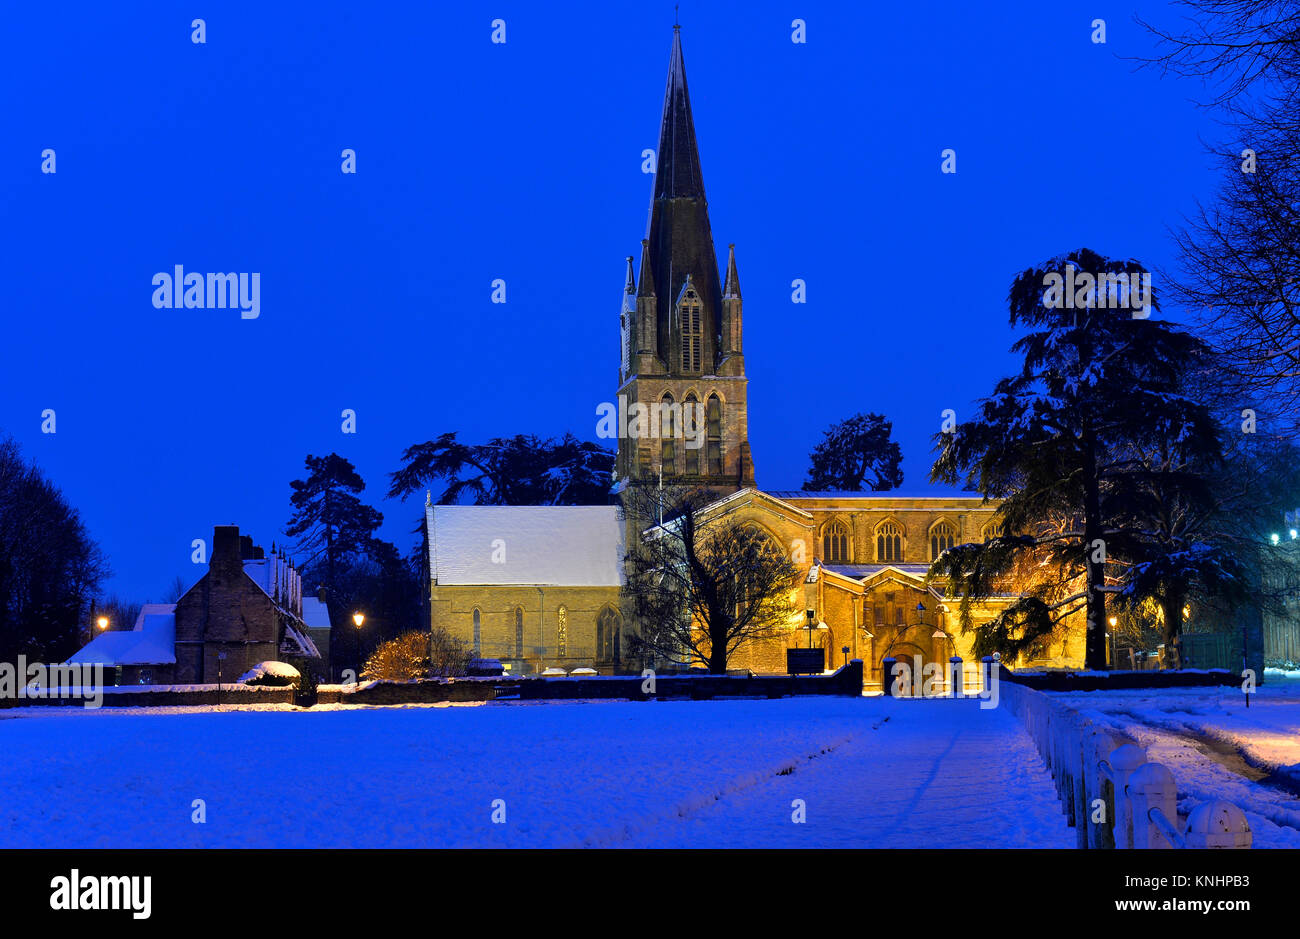 St Mary's Church, Witney in winter - Stock Image